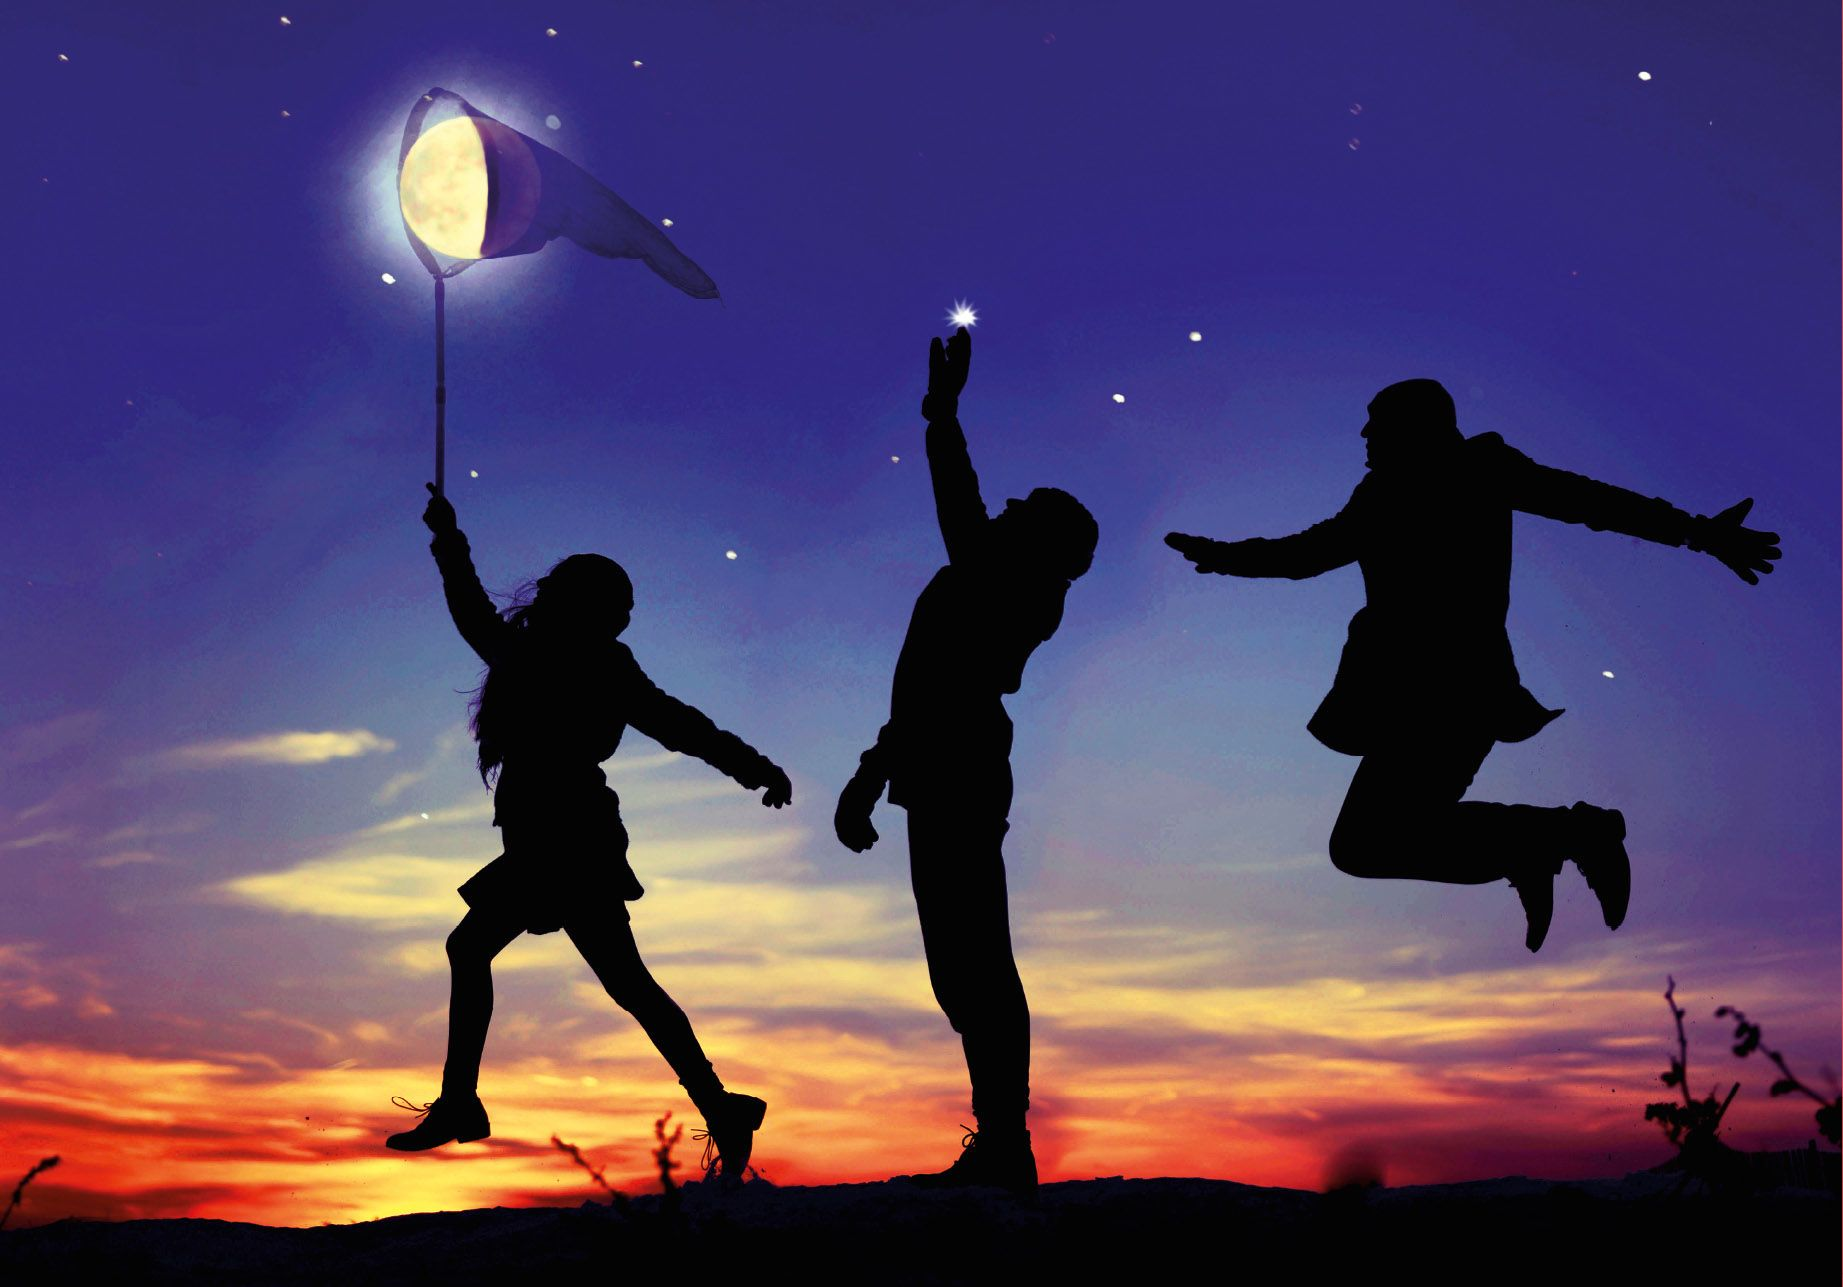 Catch the moon! <3